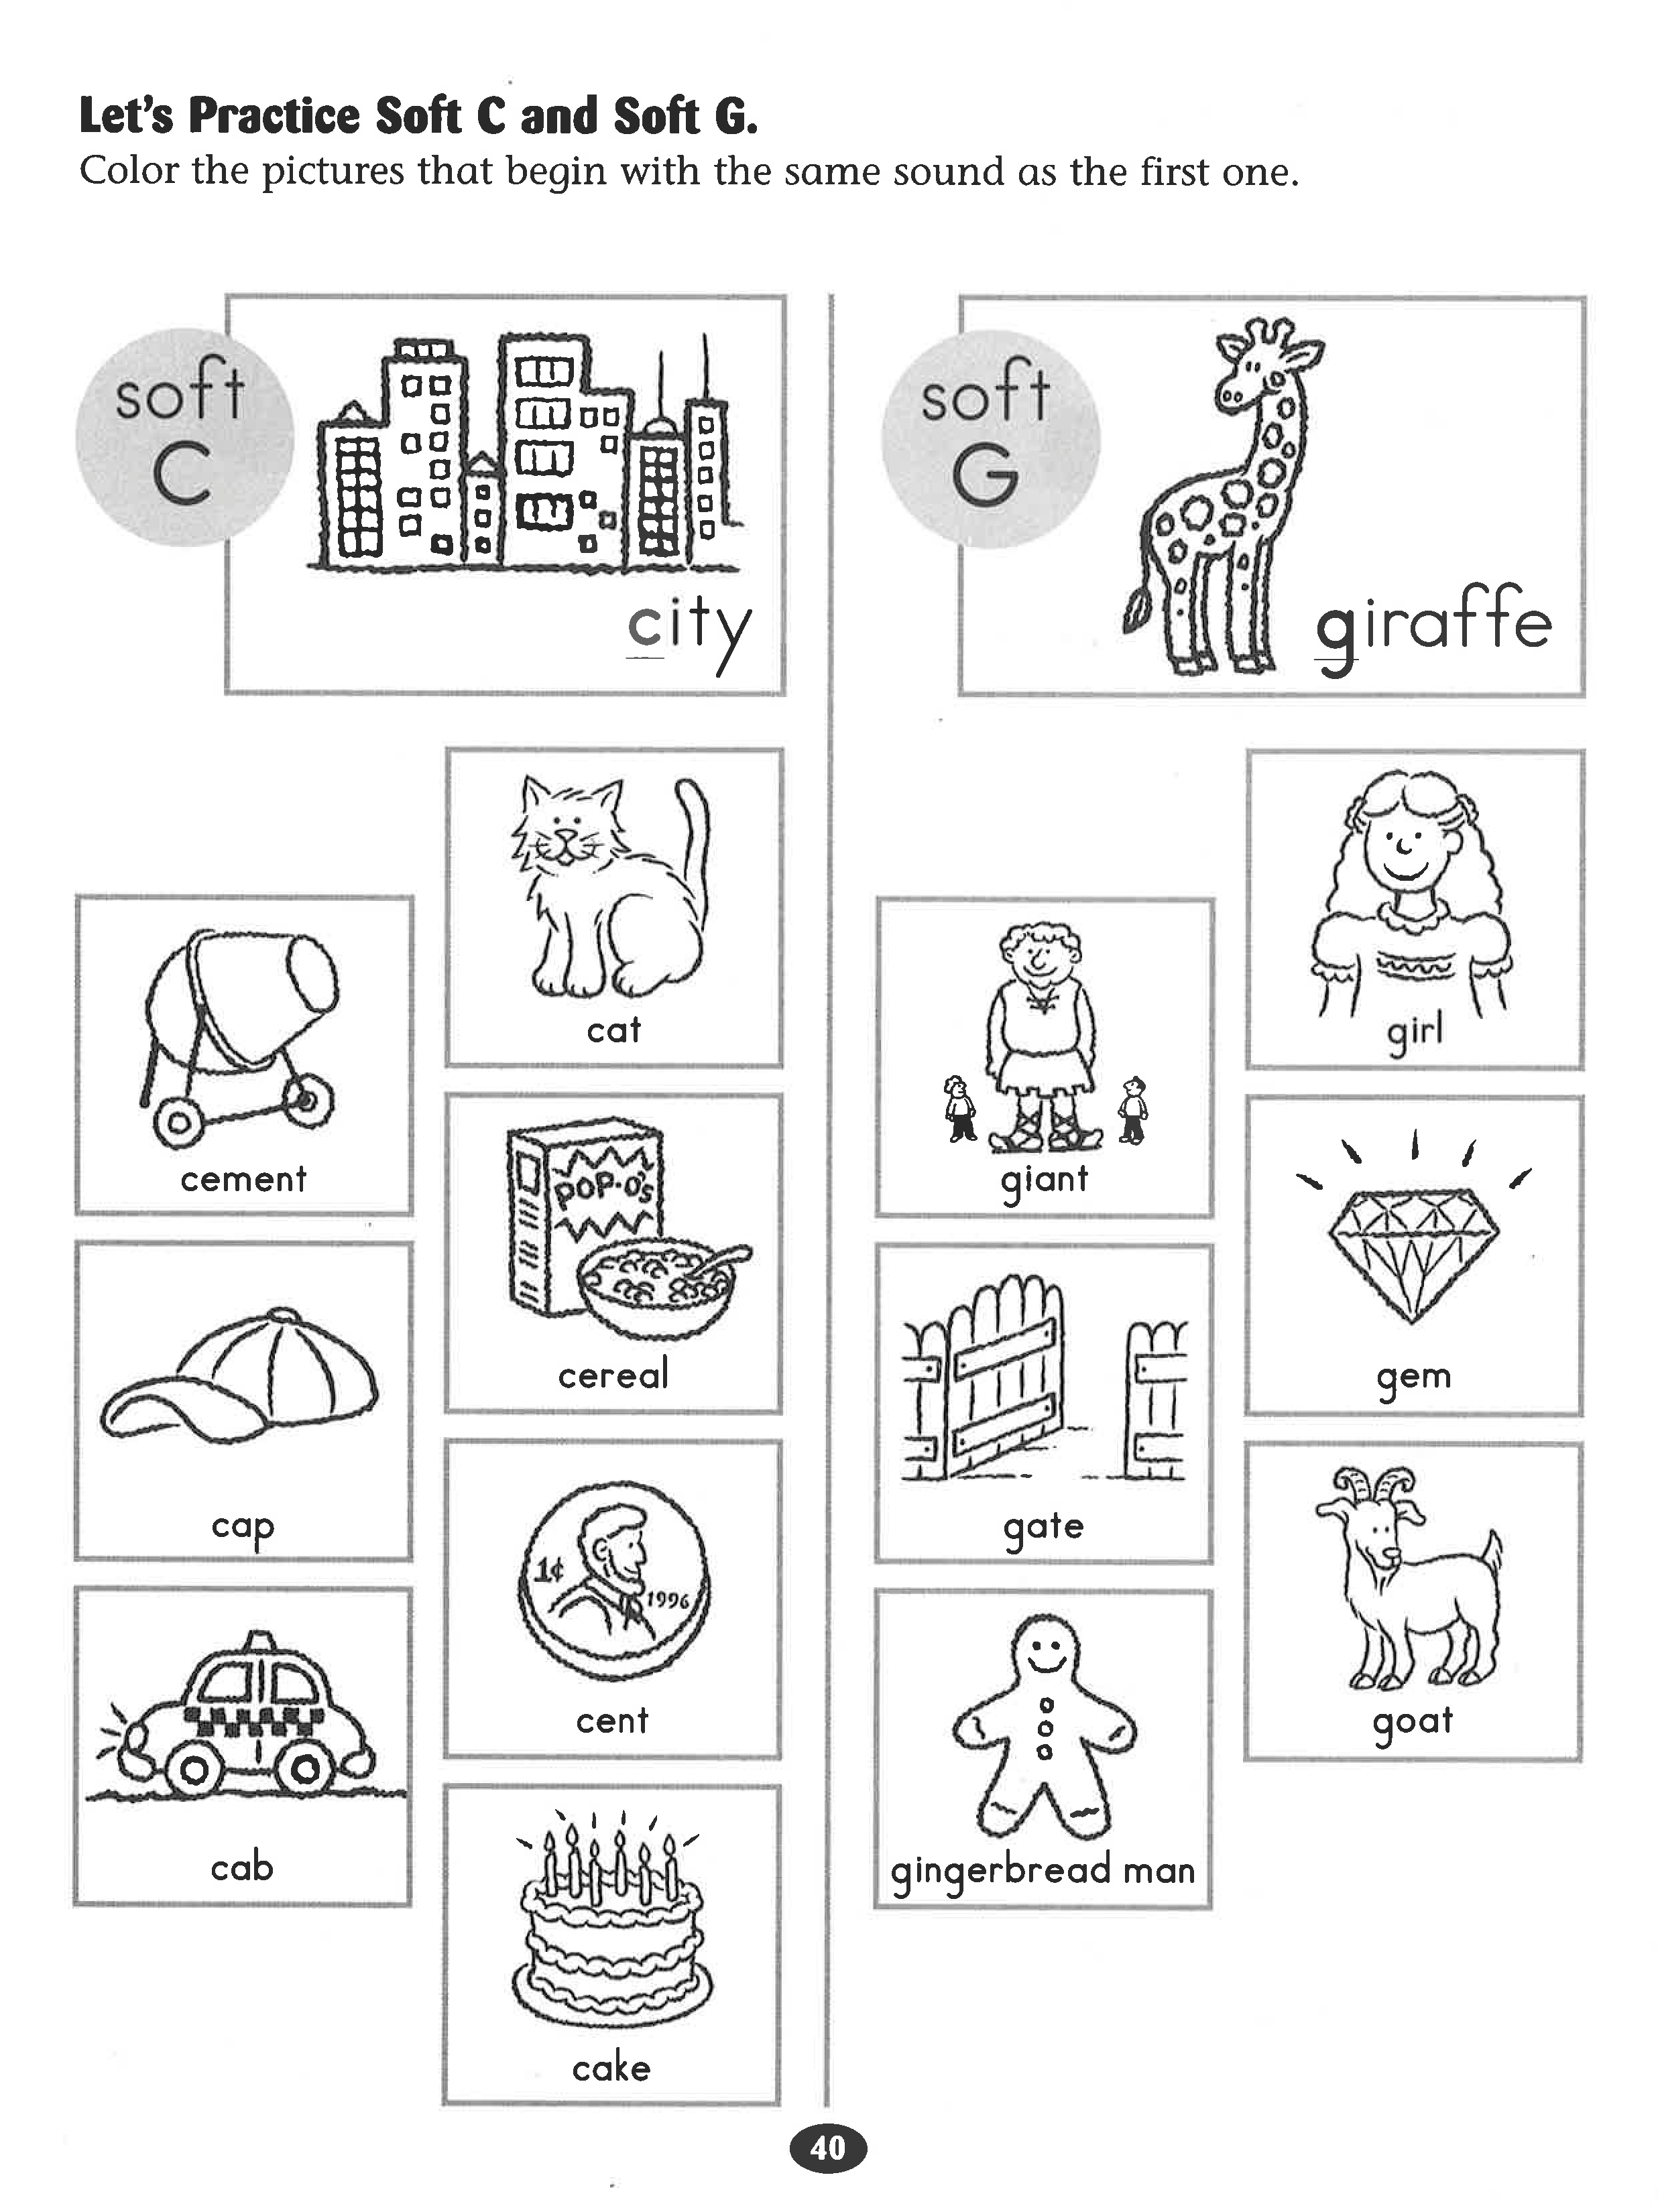 Worksheets Letter Sound Worksheets lets practice soft c and g worksheet rockin reader letter sound